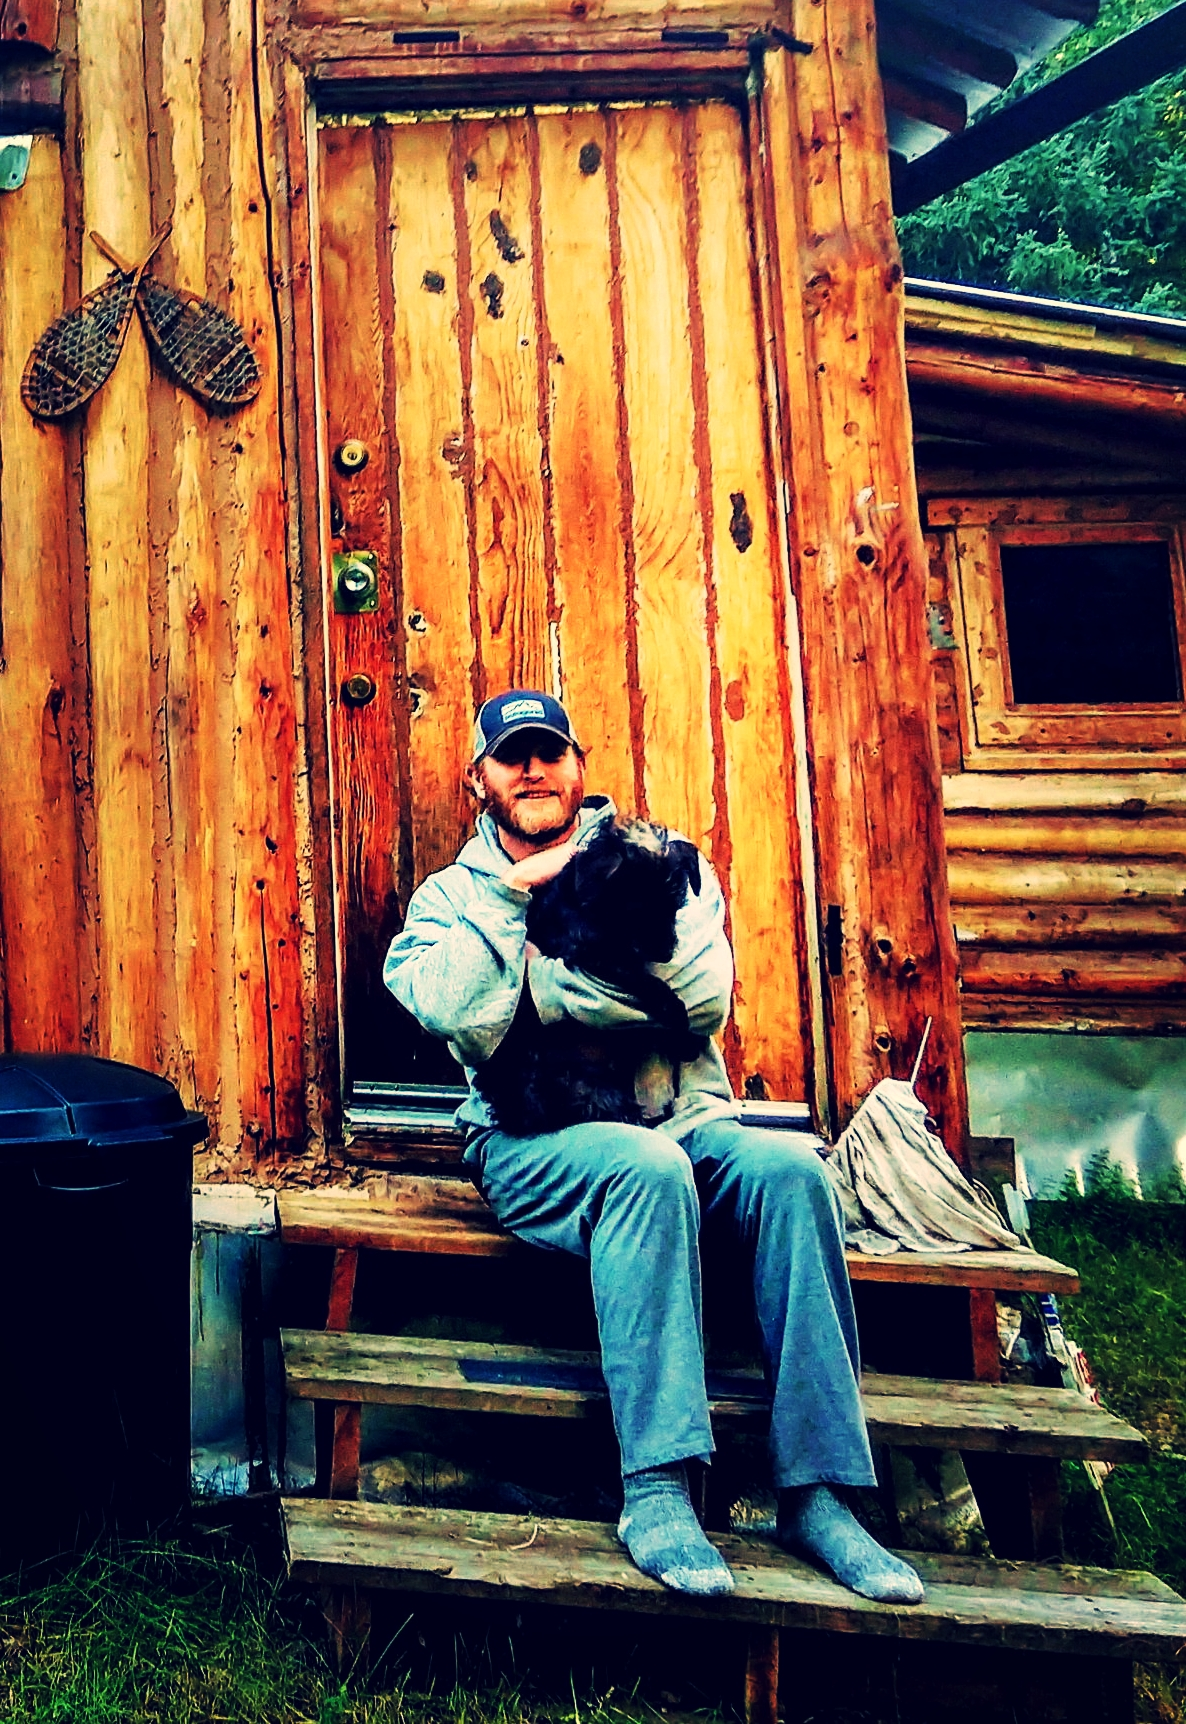 Our pal Nate at his home in Salcha, AK!